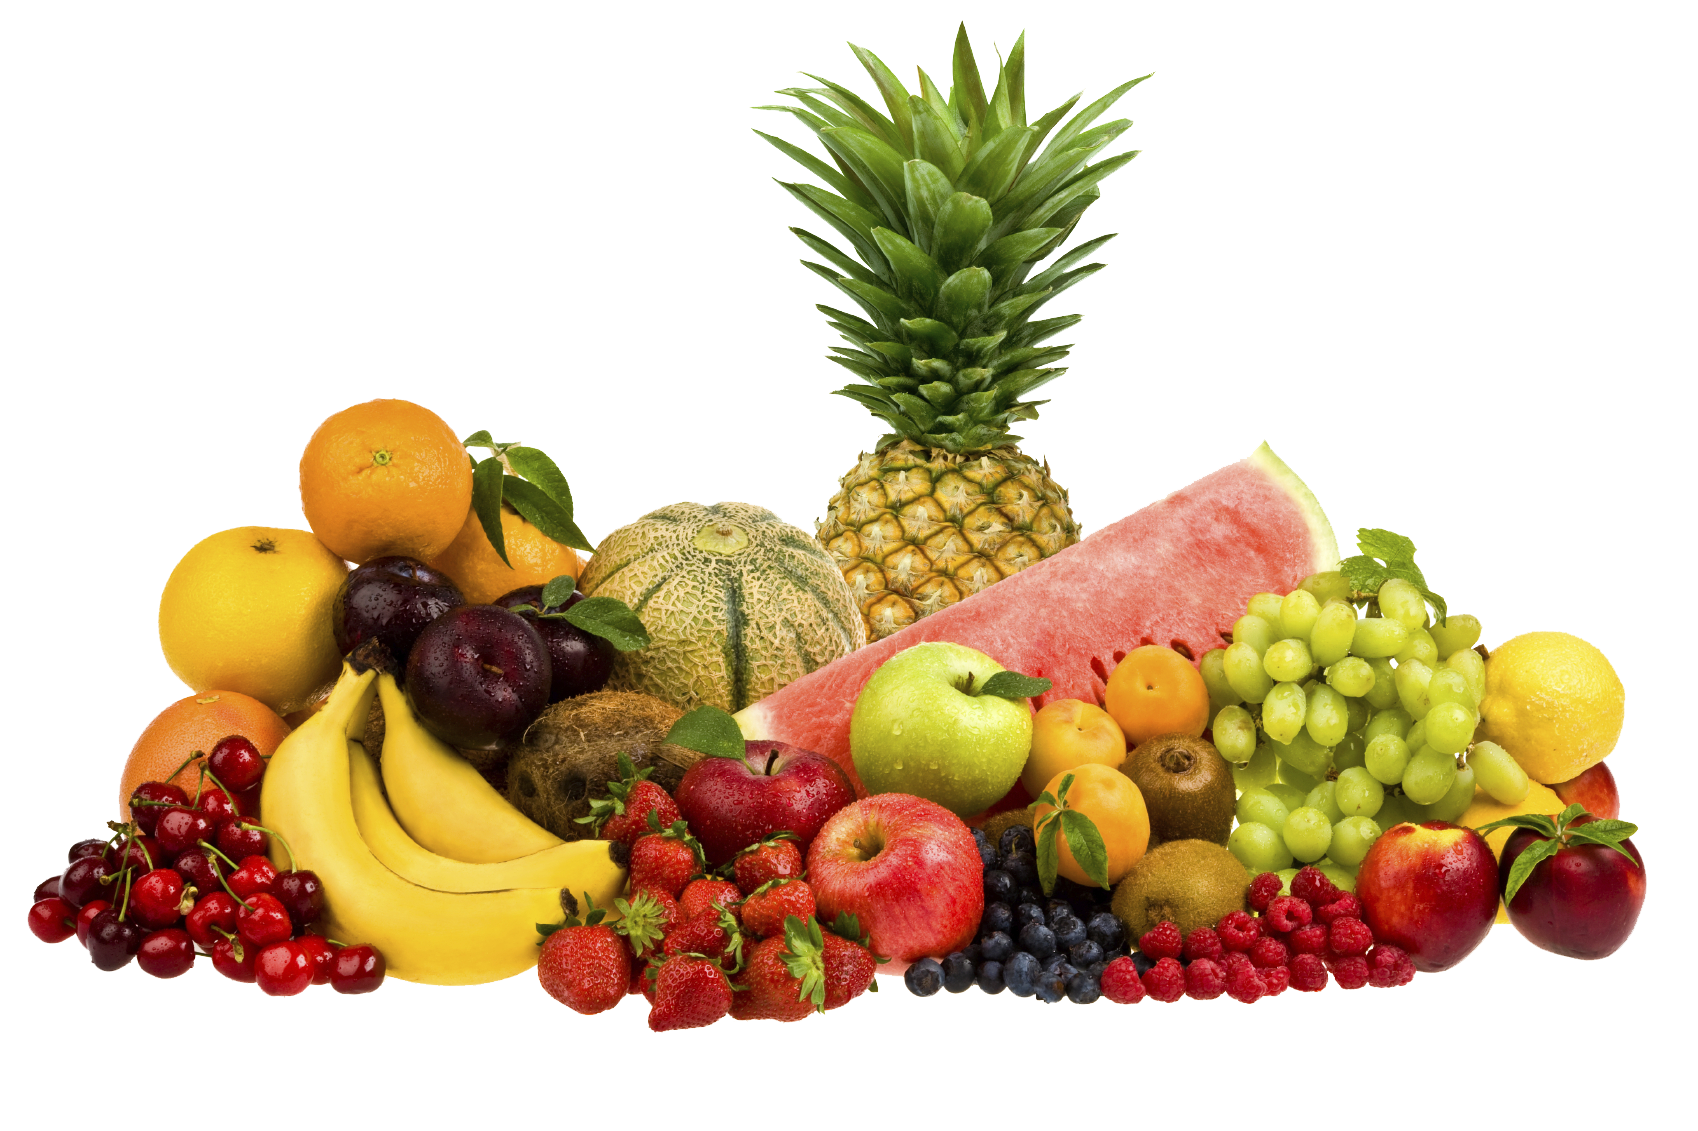 download fruit free png photo images and clipart | freepngimg